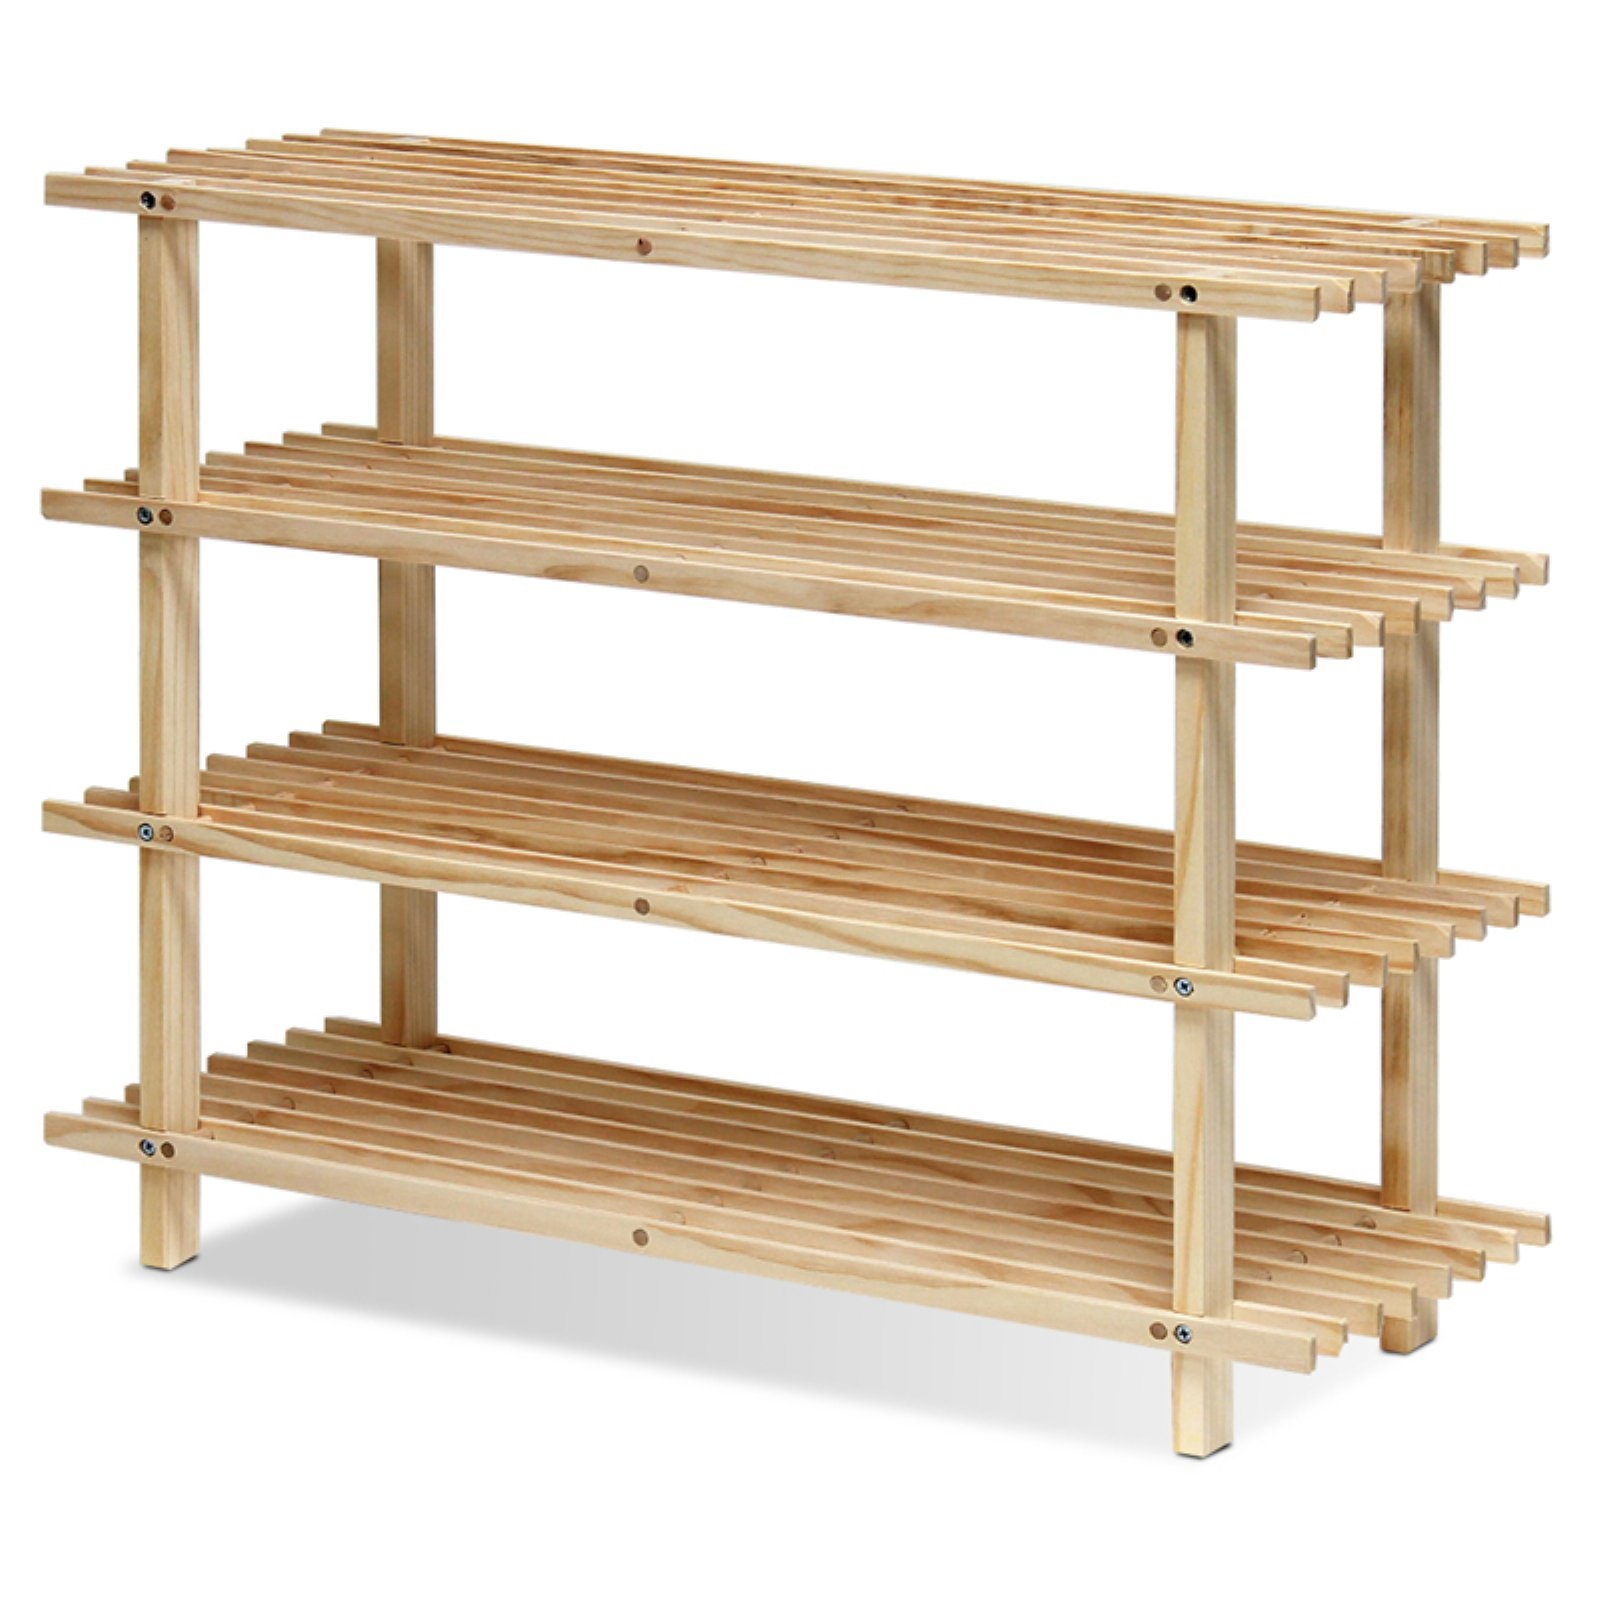 Furinno FNCJ-33005 Pine Solid Wood 4-Tier Shoe Rack